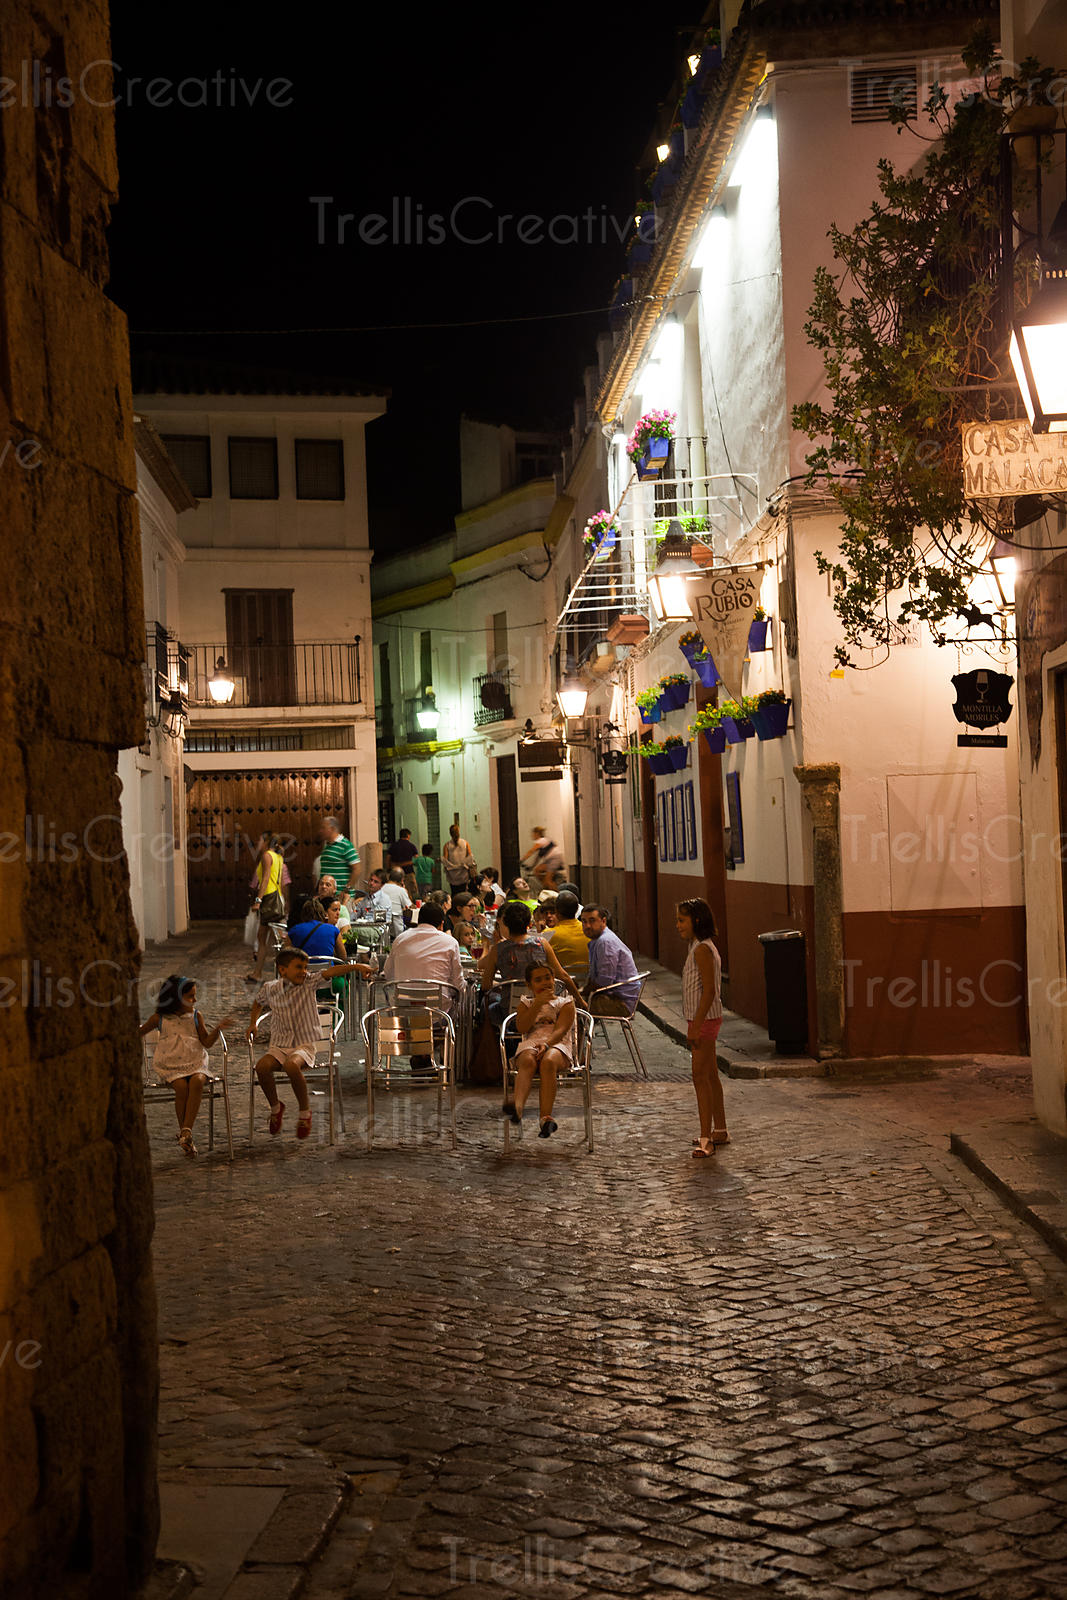 Nightlife in the old city of Cordoba, Spain